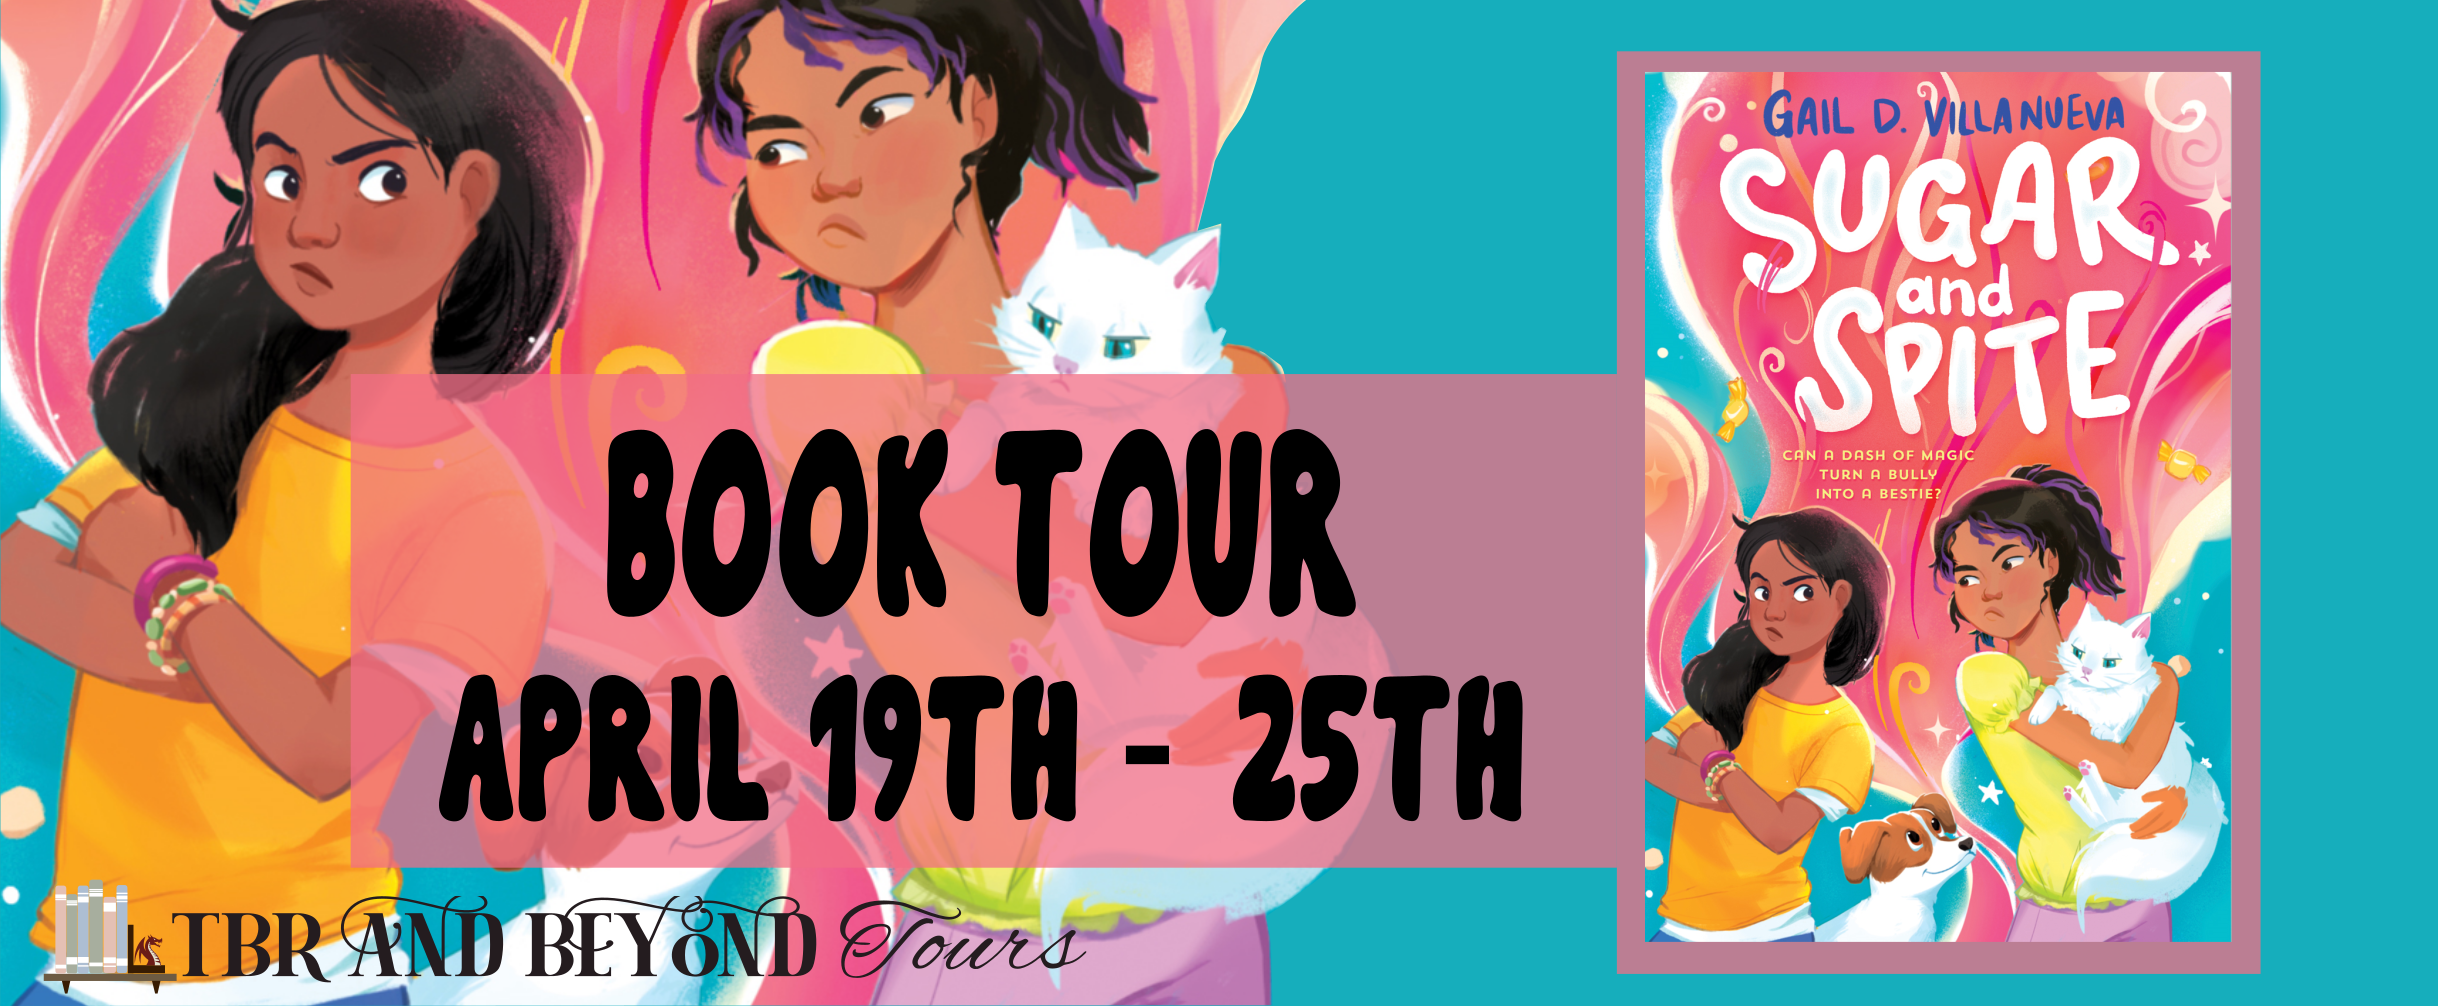 Blog Tour: Sugar and Spite by Gail D. Villanueva (Interview + Giveaway!)